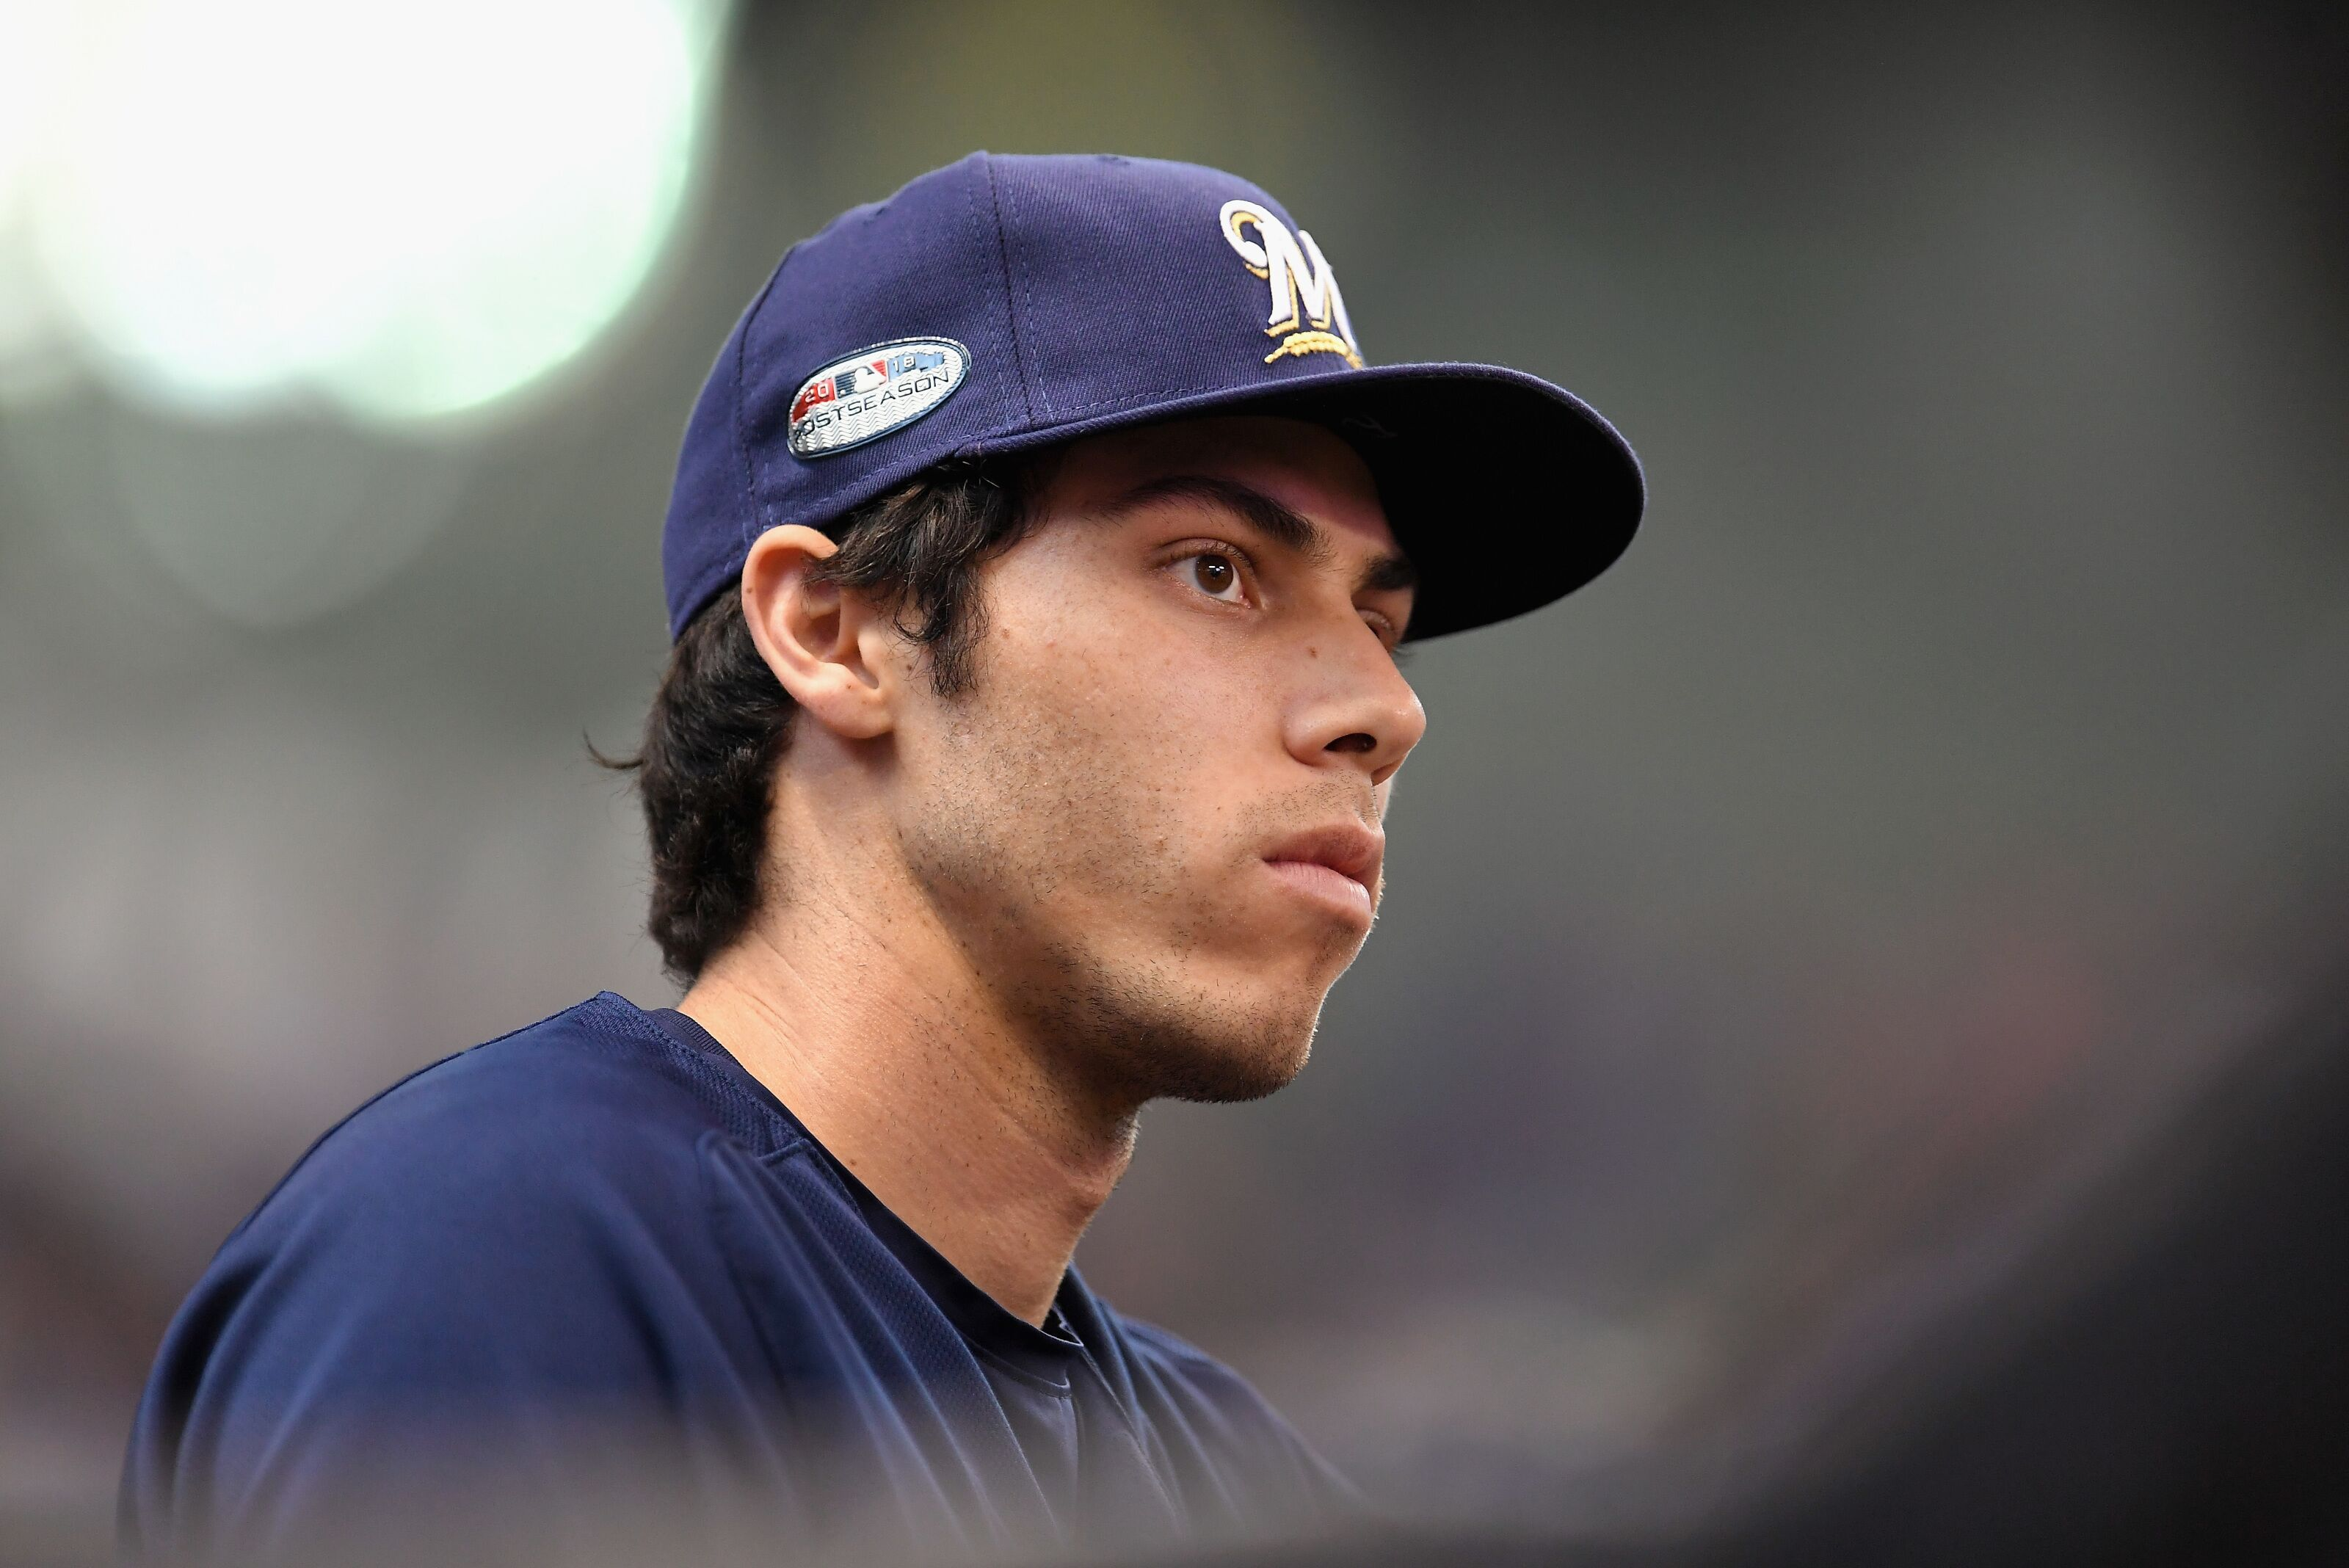 Milwaukee Brewers: Christian Yelich Is The New Face Of The Franchise